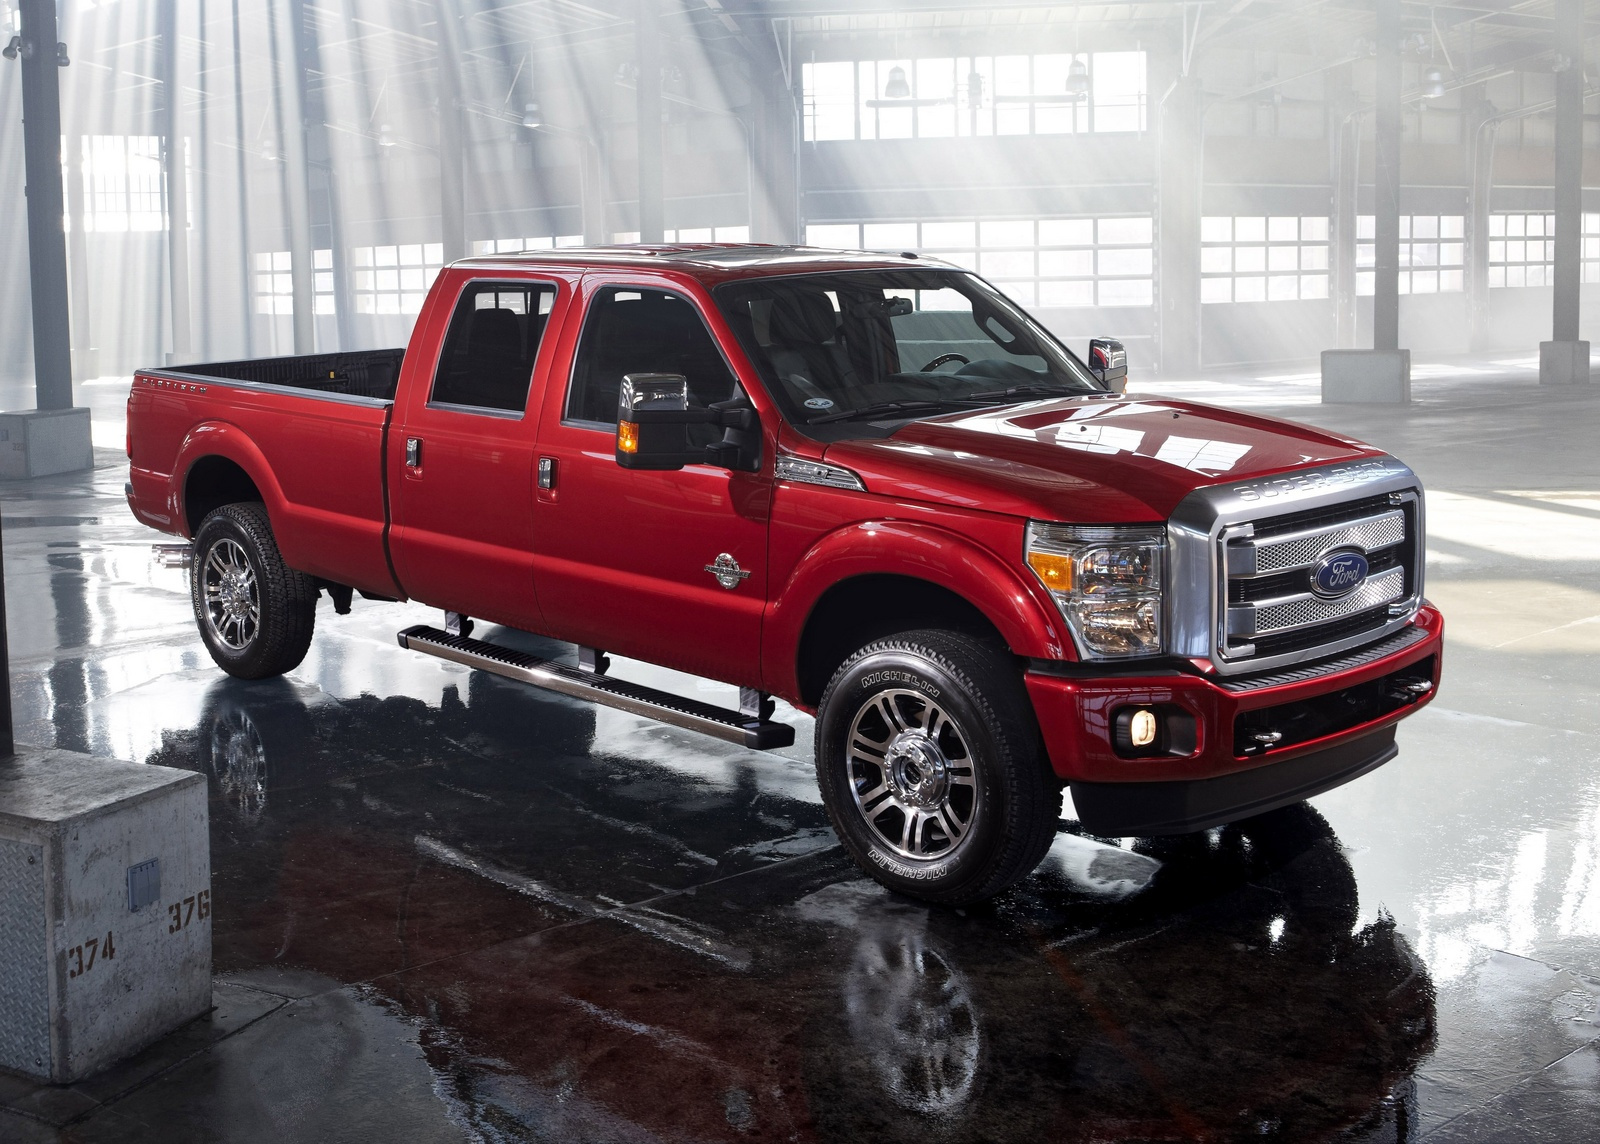 2014 ford f 350 super duty overview cargurus rh cargurus com